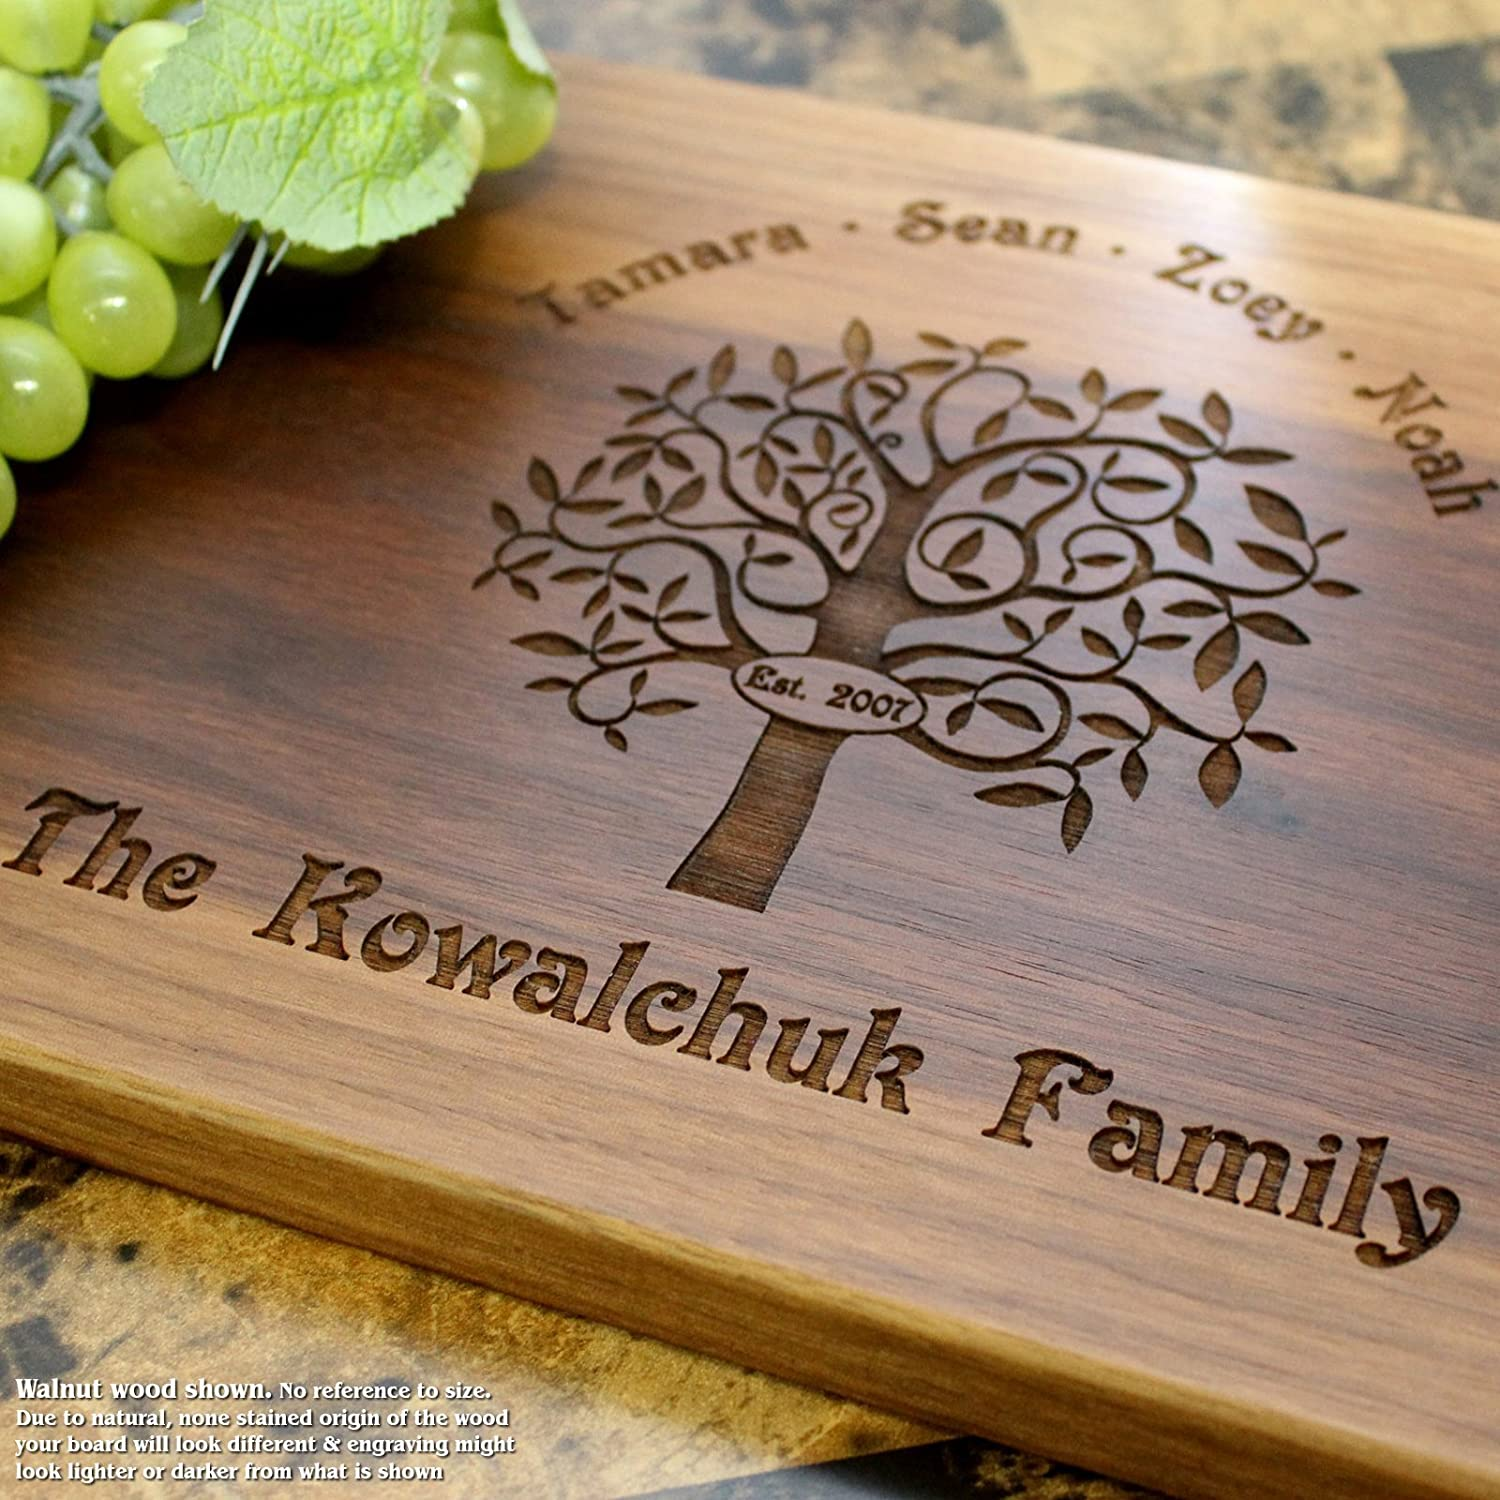 Personalized Cutting Board, Custom Keepsake, Engraved Serving Cheese Plate, Wedding, Anniversary, Engagement, Housewarming, Birthday, Corporate, Closing Gift #402